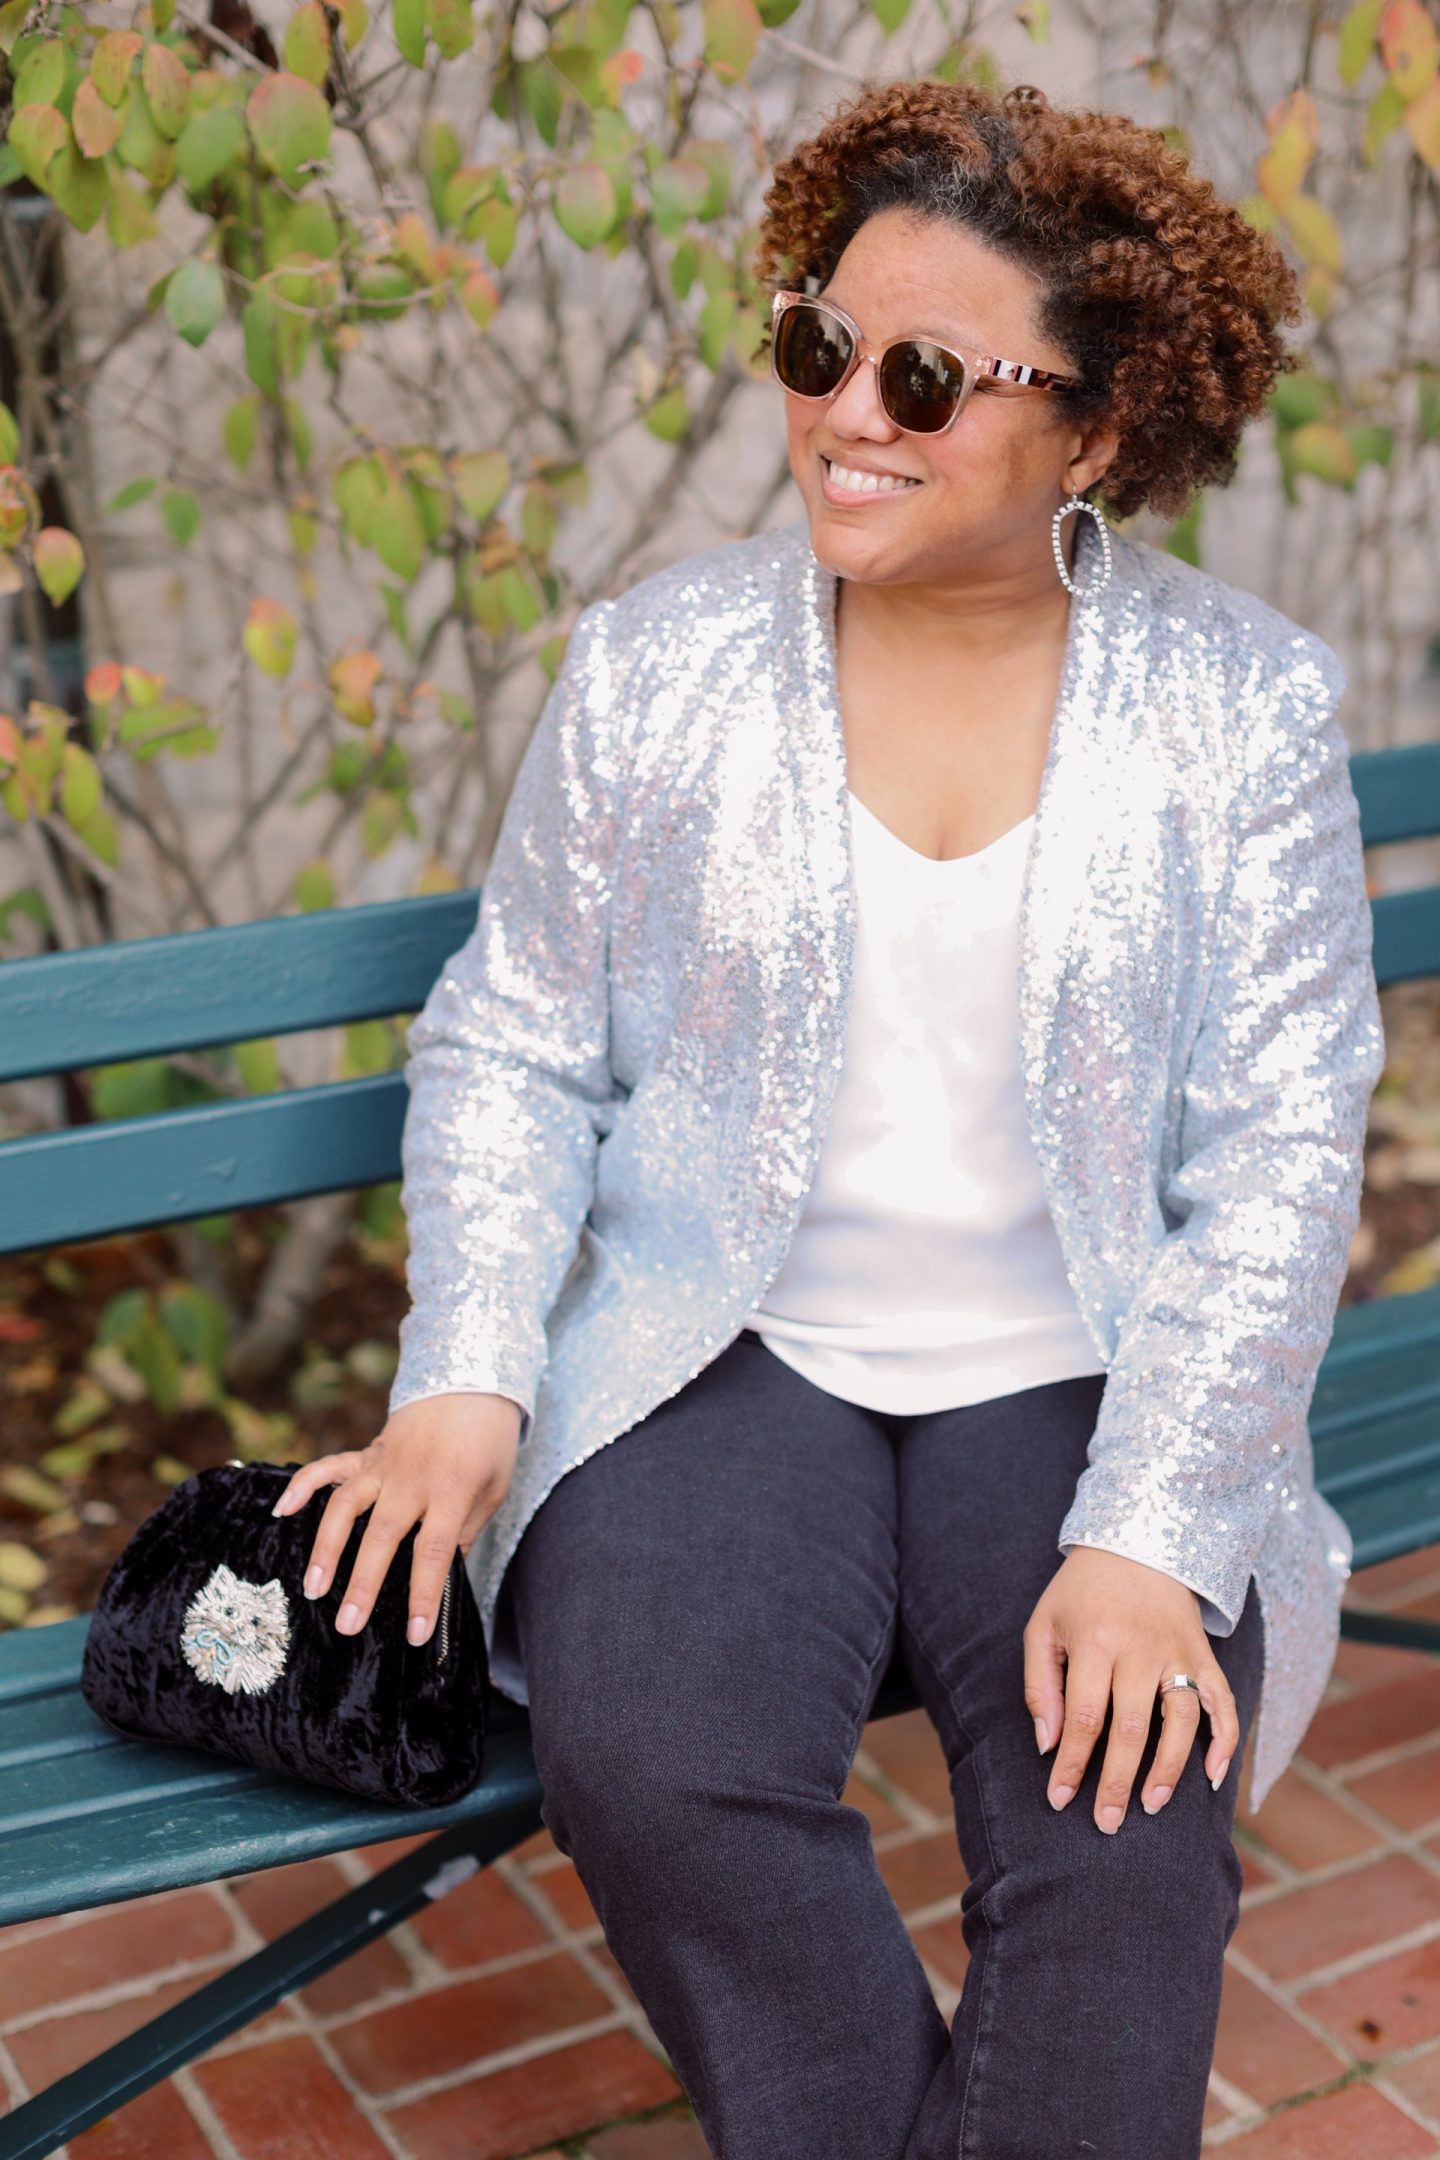 Nordstrom Holiday Looks by popular Kentucky fashion blog, Really Rynetta: image of a woman wearing a Nordstrom sequin blazer, jeans, statement earrings, and white blouse.